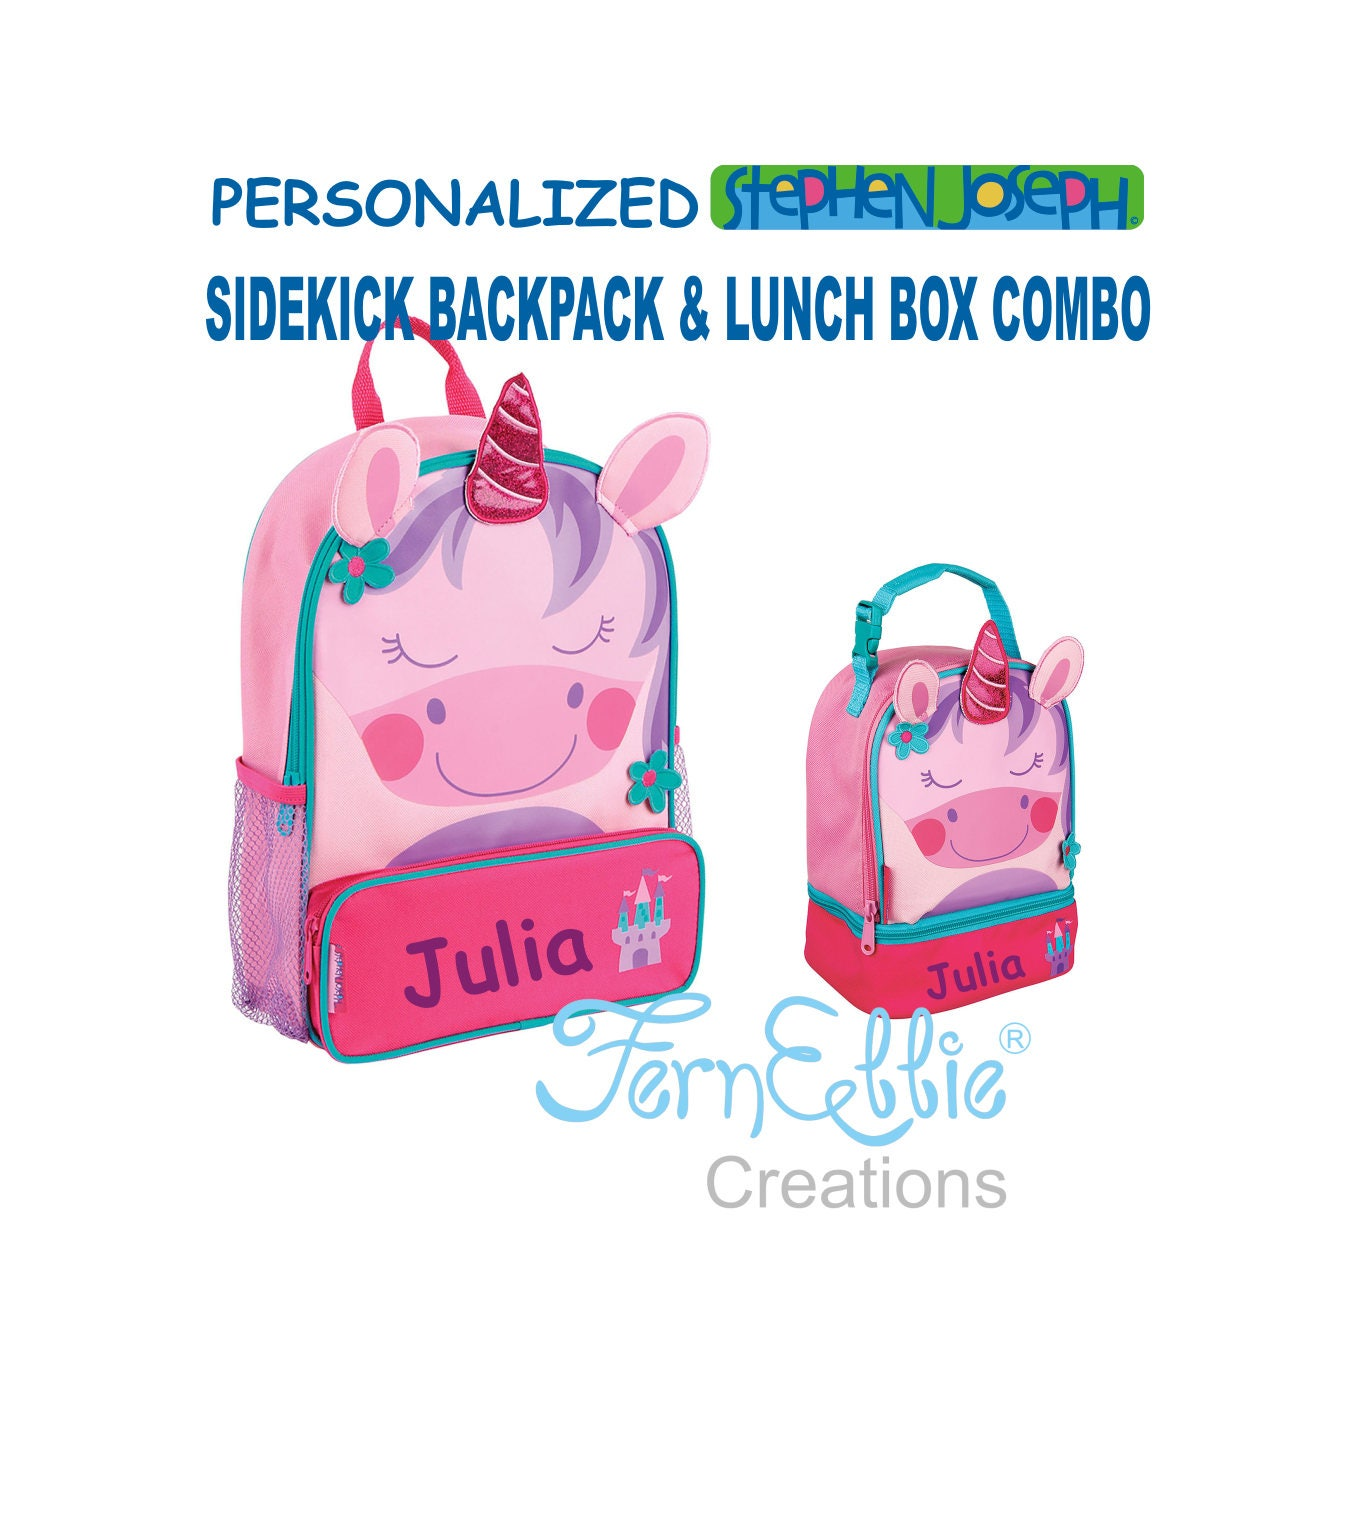 34330c10b7 Personalized Stephen Joseph UNICORN Sidekick Backpack and Lunch Pal Combo.